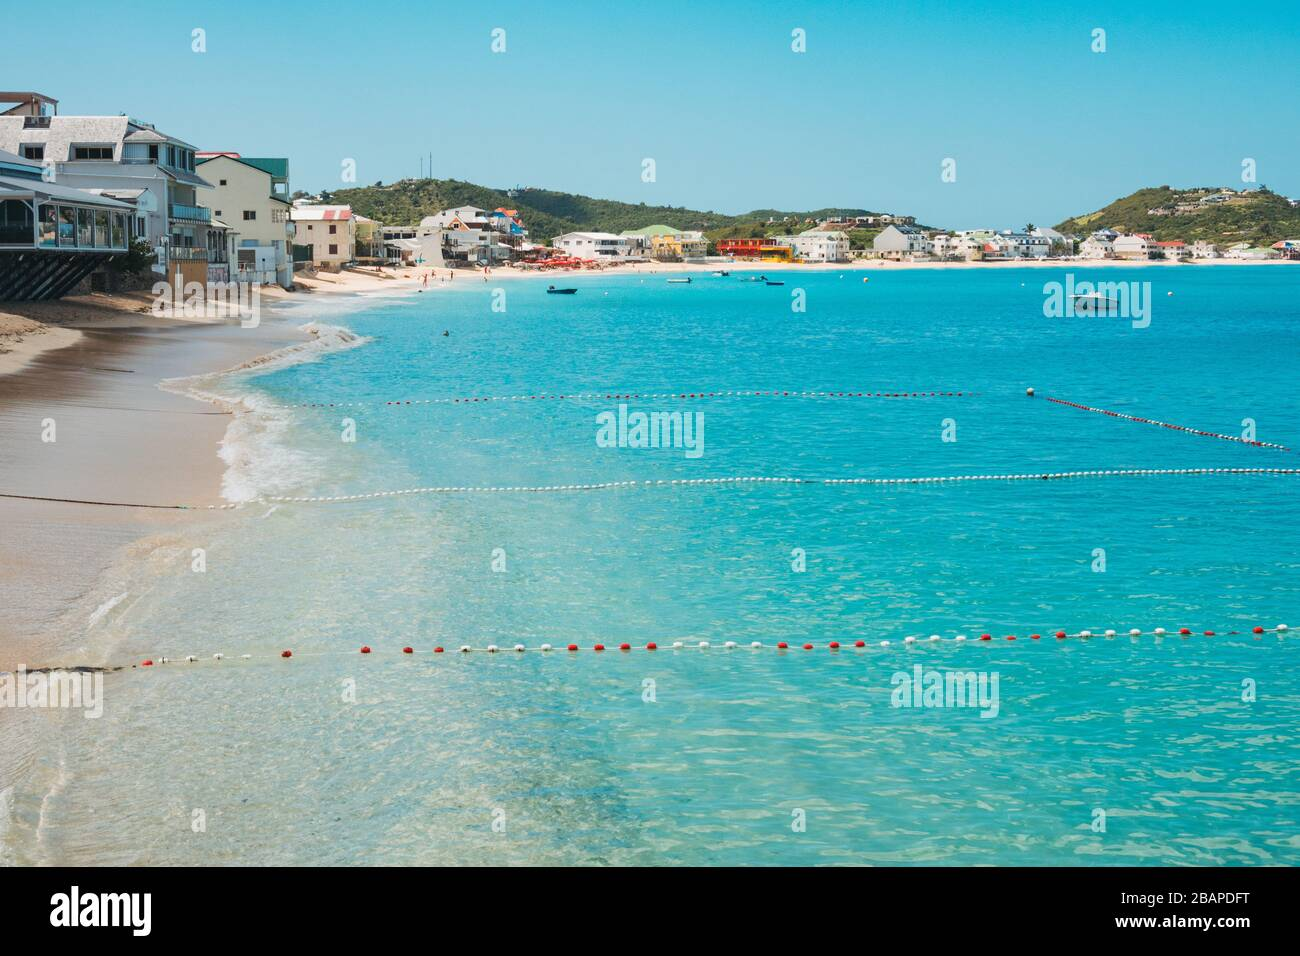 Buoyed off swimming areas in the blue waters of Grand Case Beach, Saint Martin (French side) Stock Photo